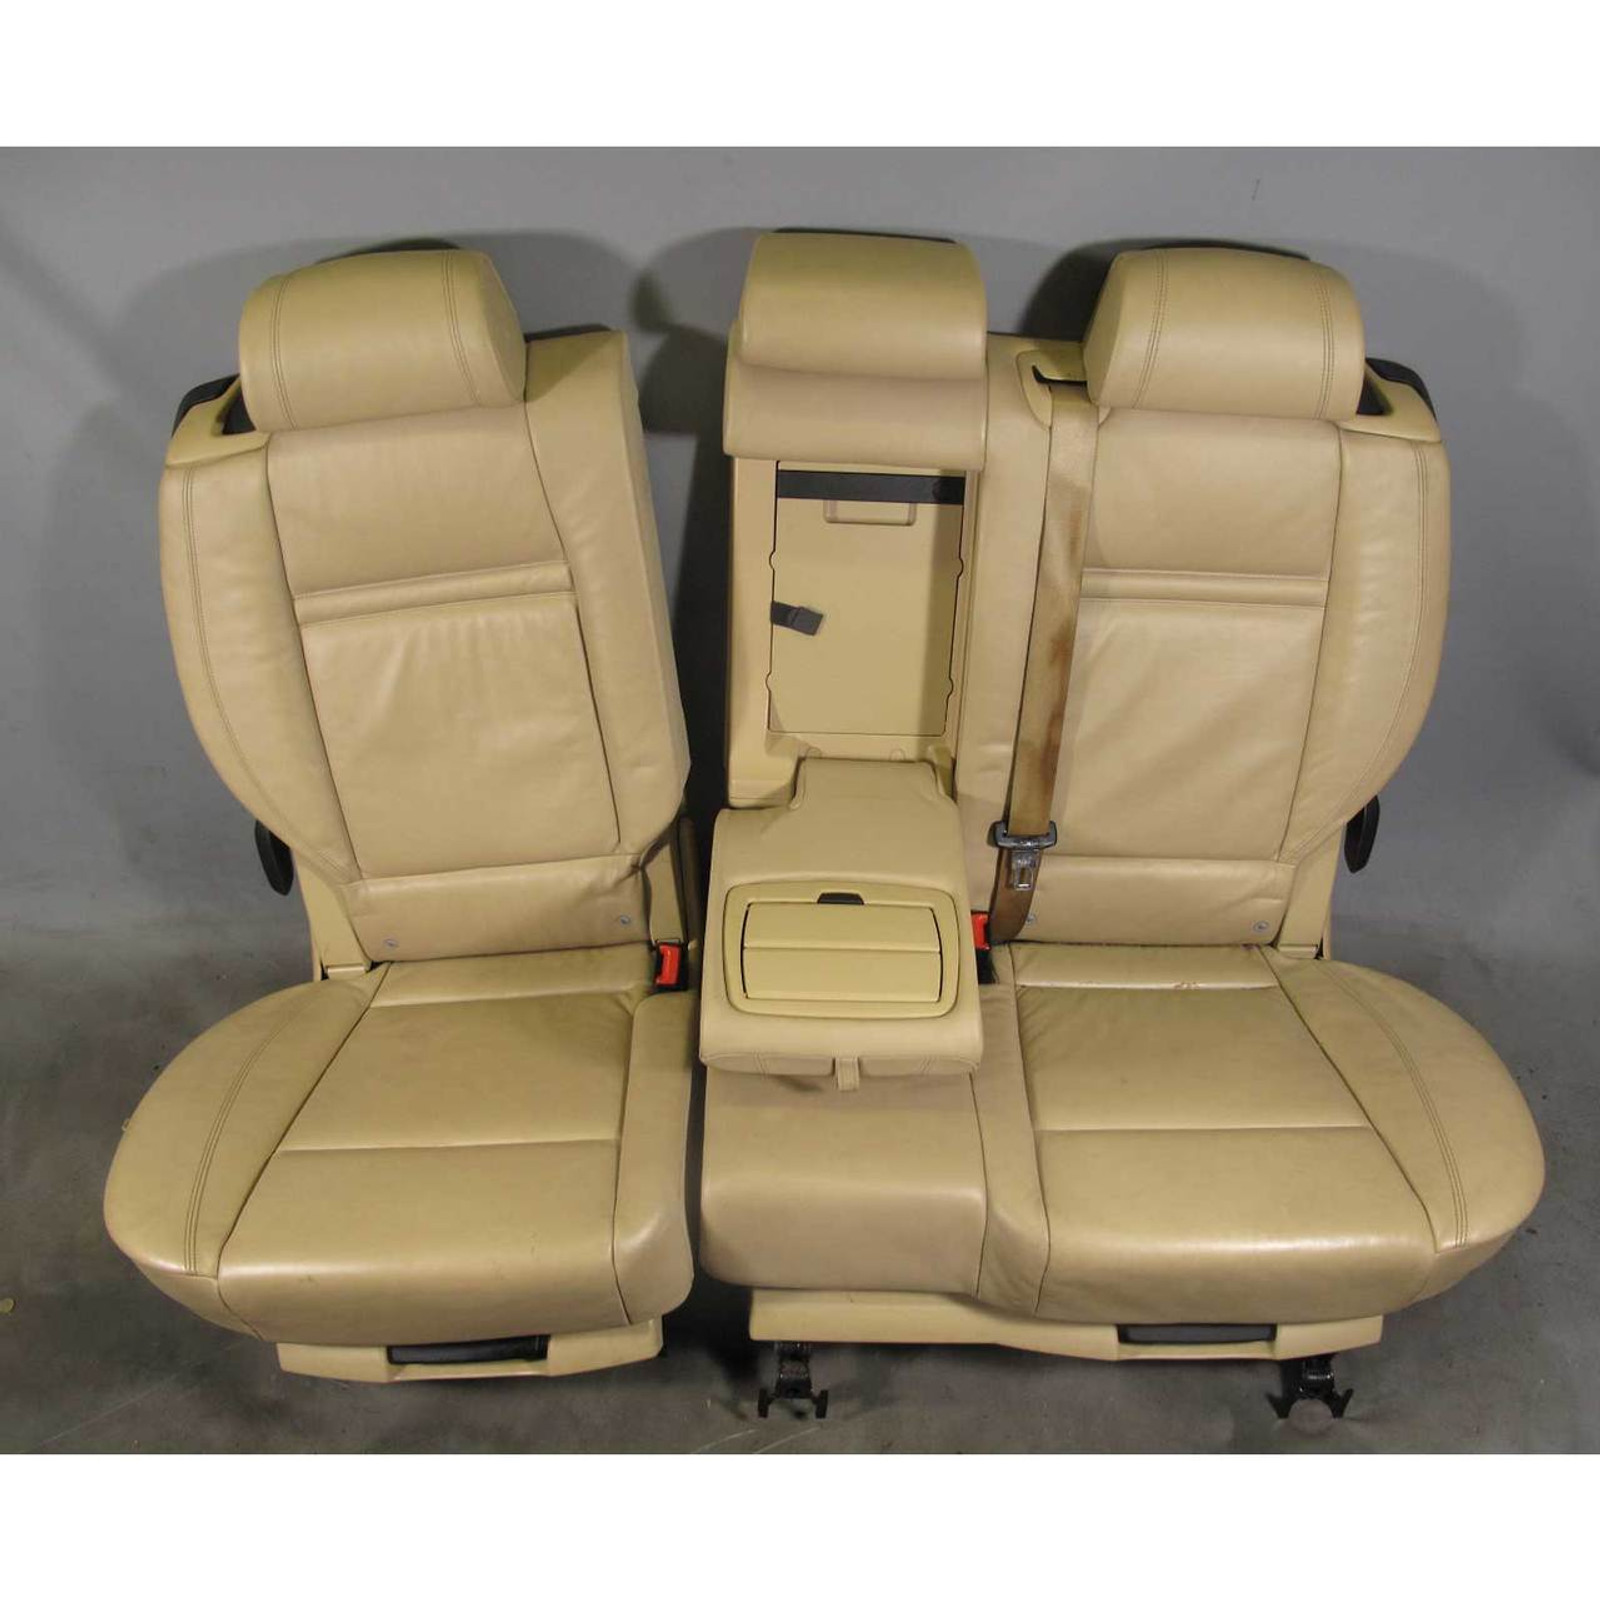 Astounding 2007 2013 Bmw E70 X5 Sav Factory 2Nd Row Seating Beige Napa Leather For 3Rd Row Onthecornerstone Fun Painted Chair Ideas Images Onthecornerstoneorg